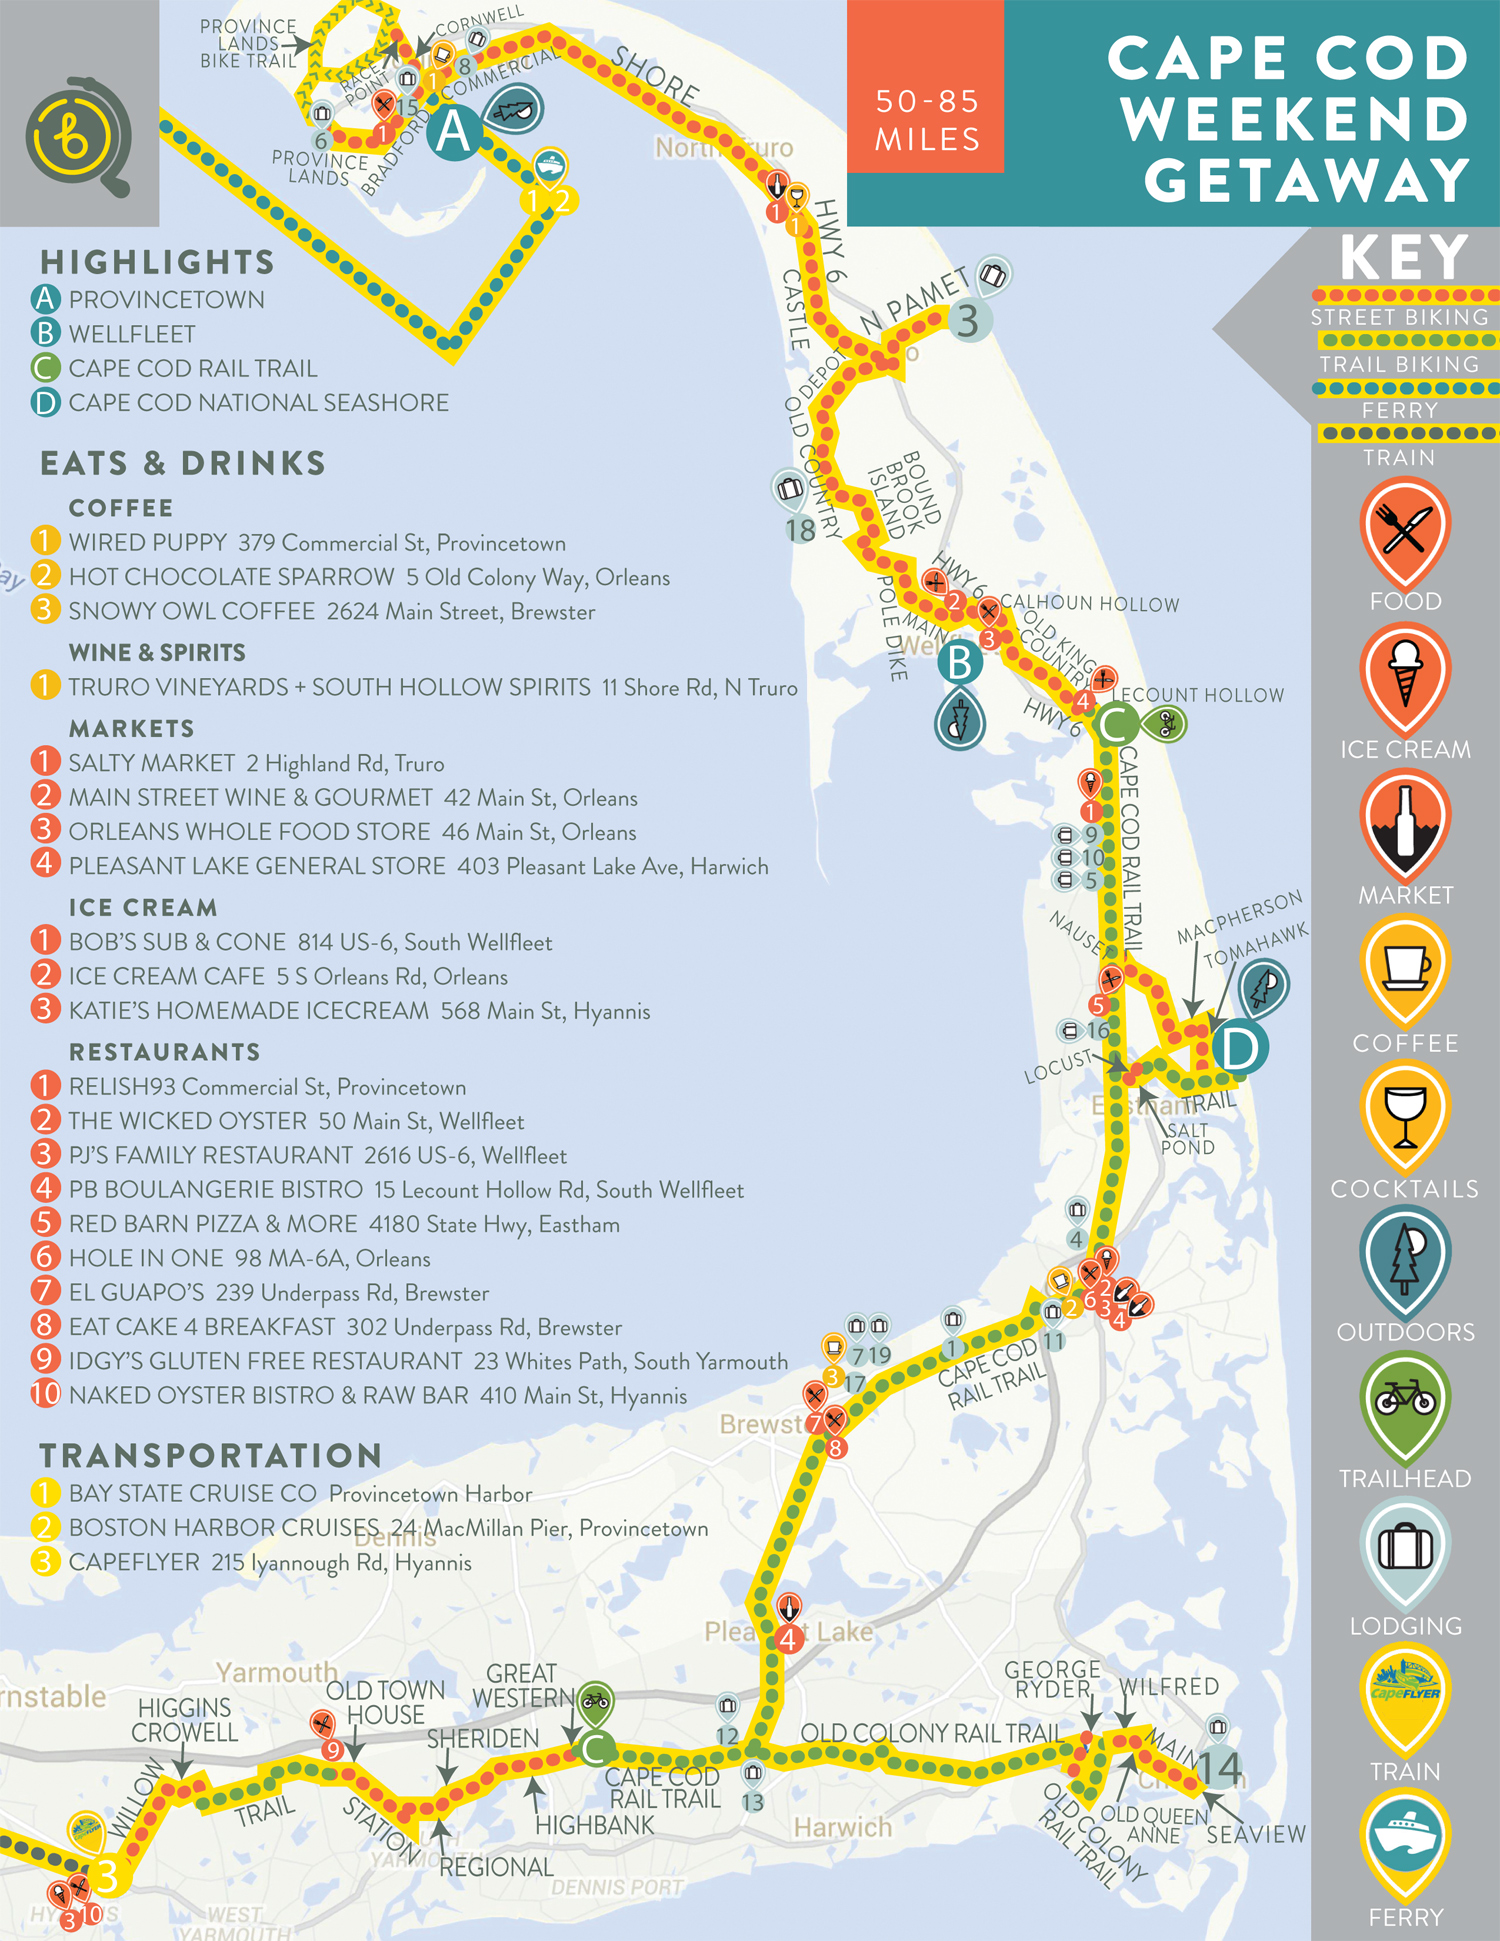 Lovely Cape Cod Weekend Getaway Map